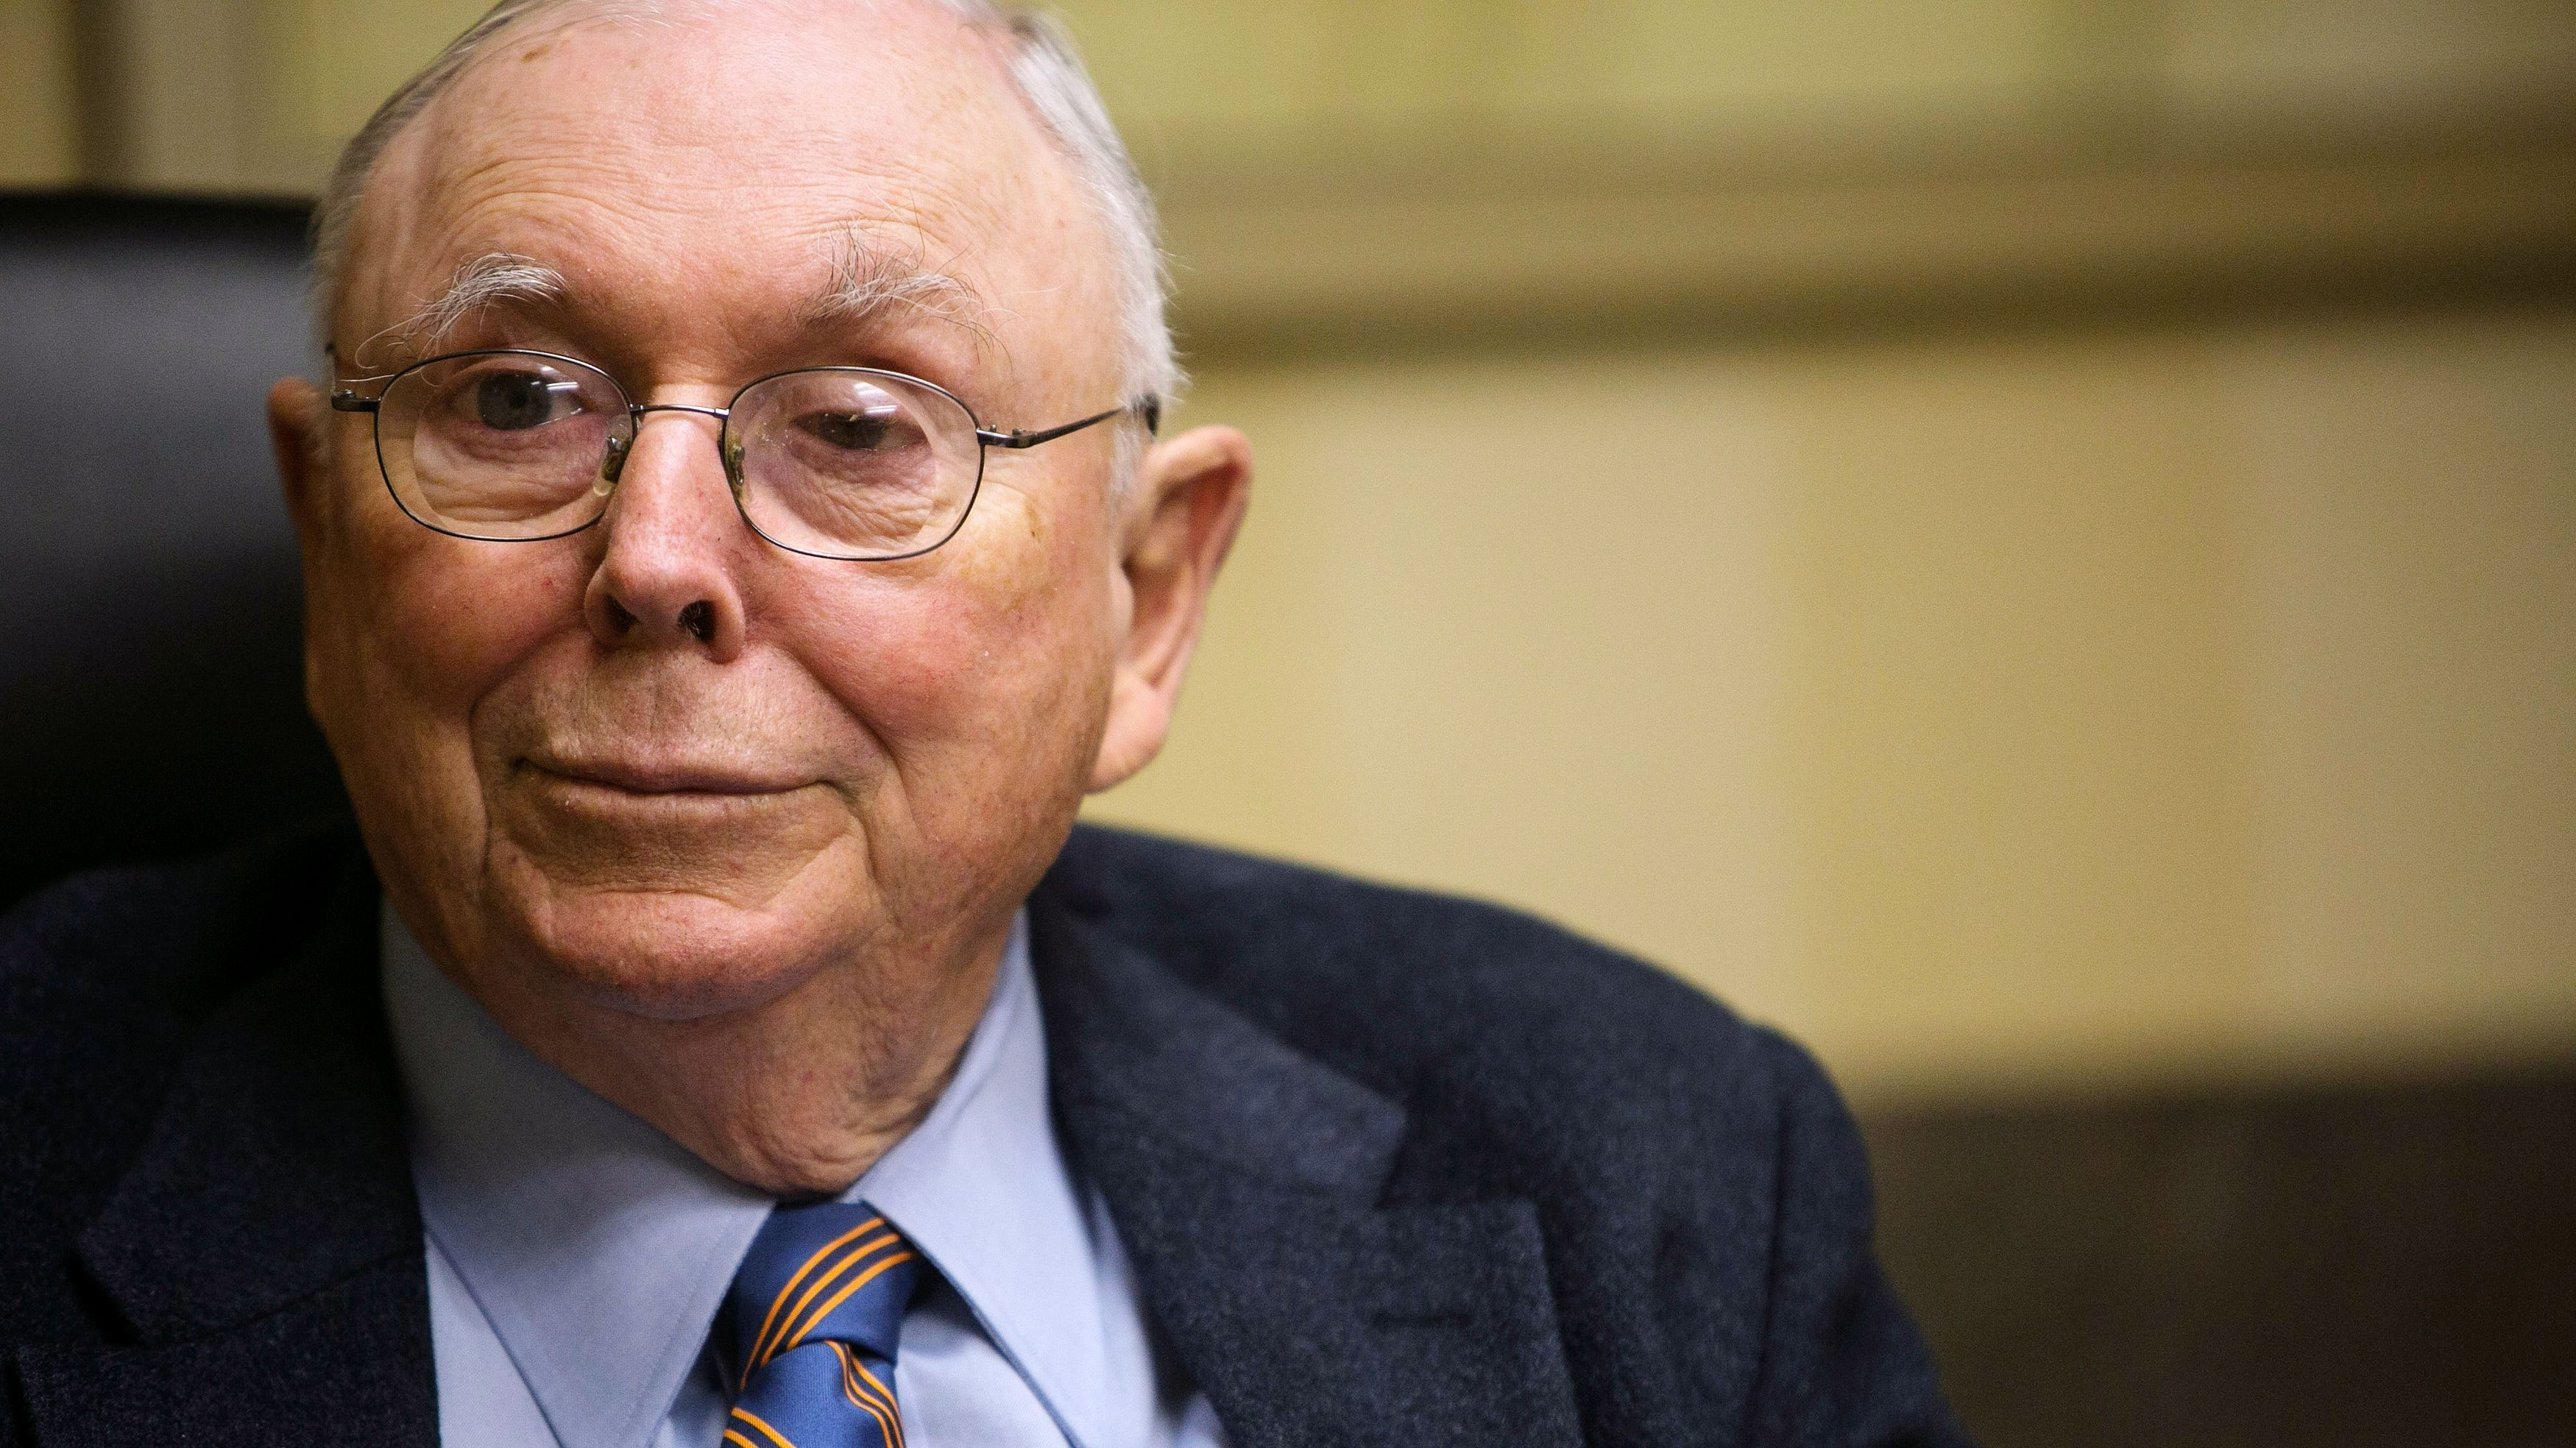 Charlie Munger offers advice on hiring—and a dig at Elon Musk